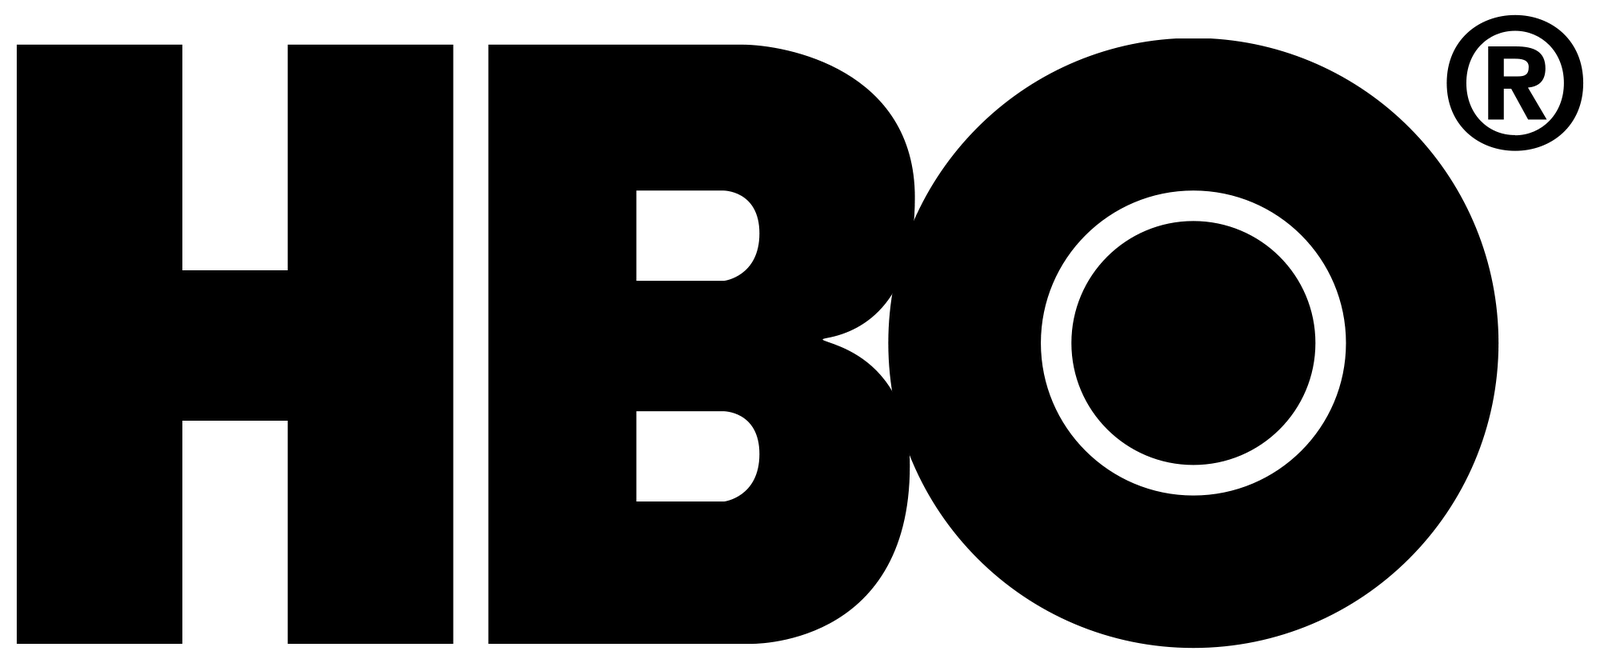 A_HBO_logo.png